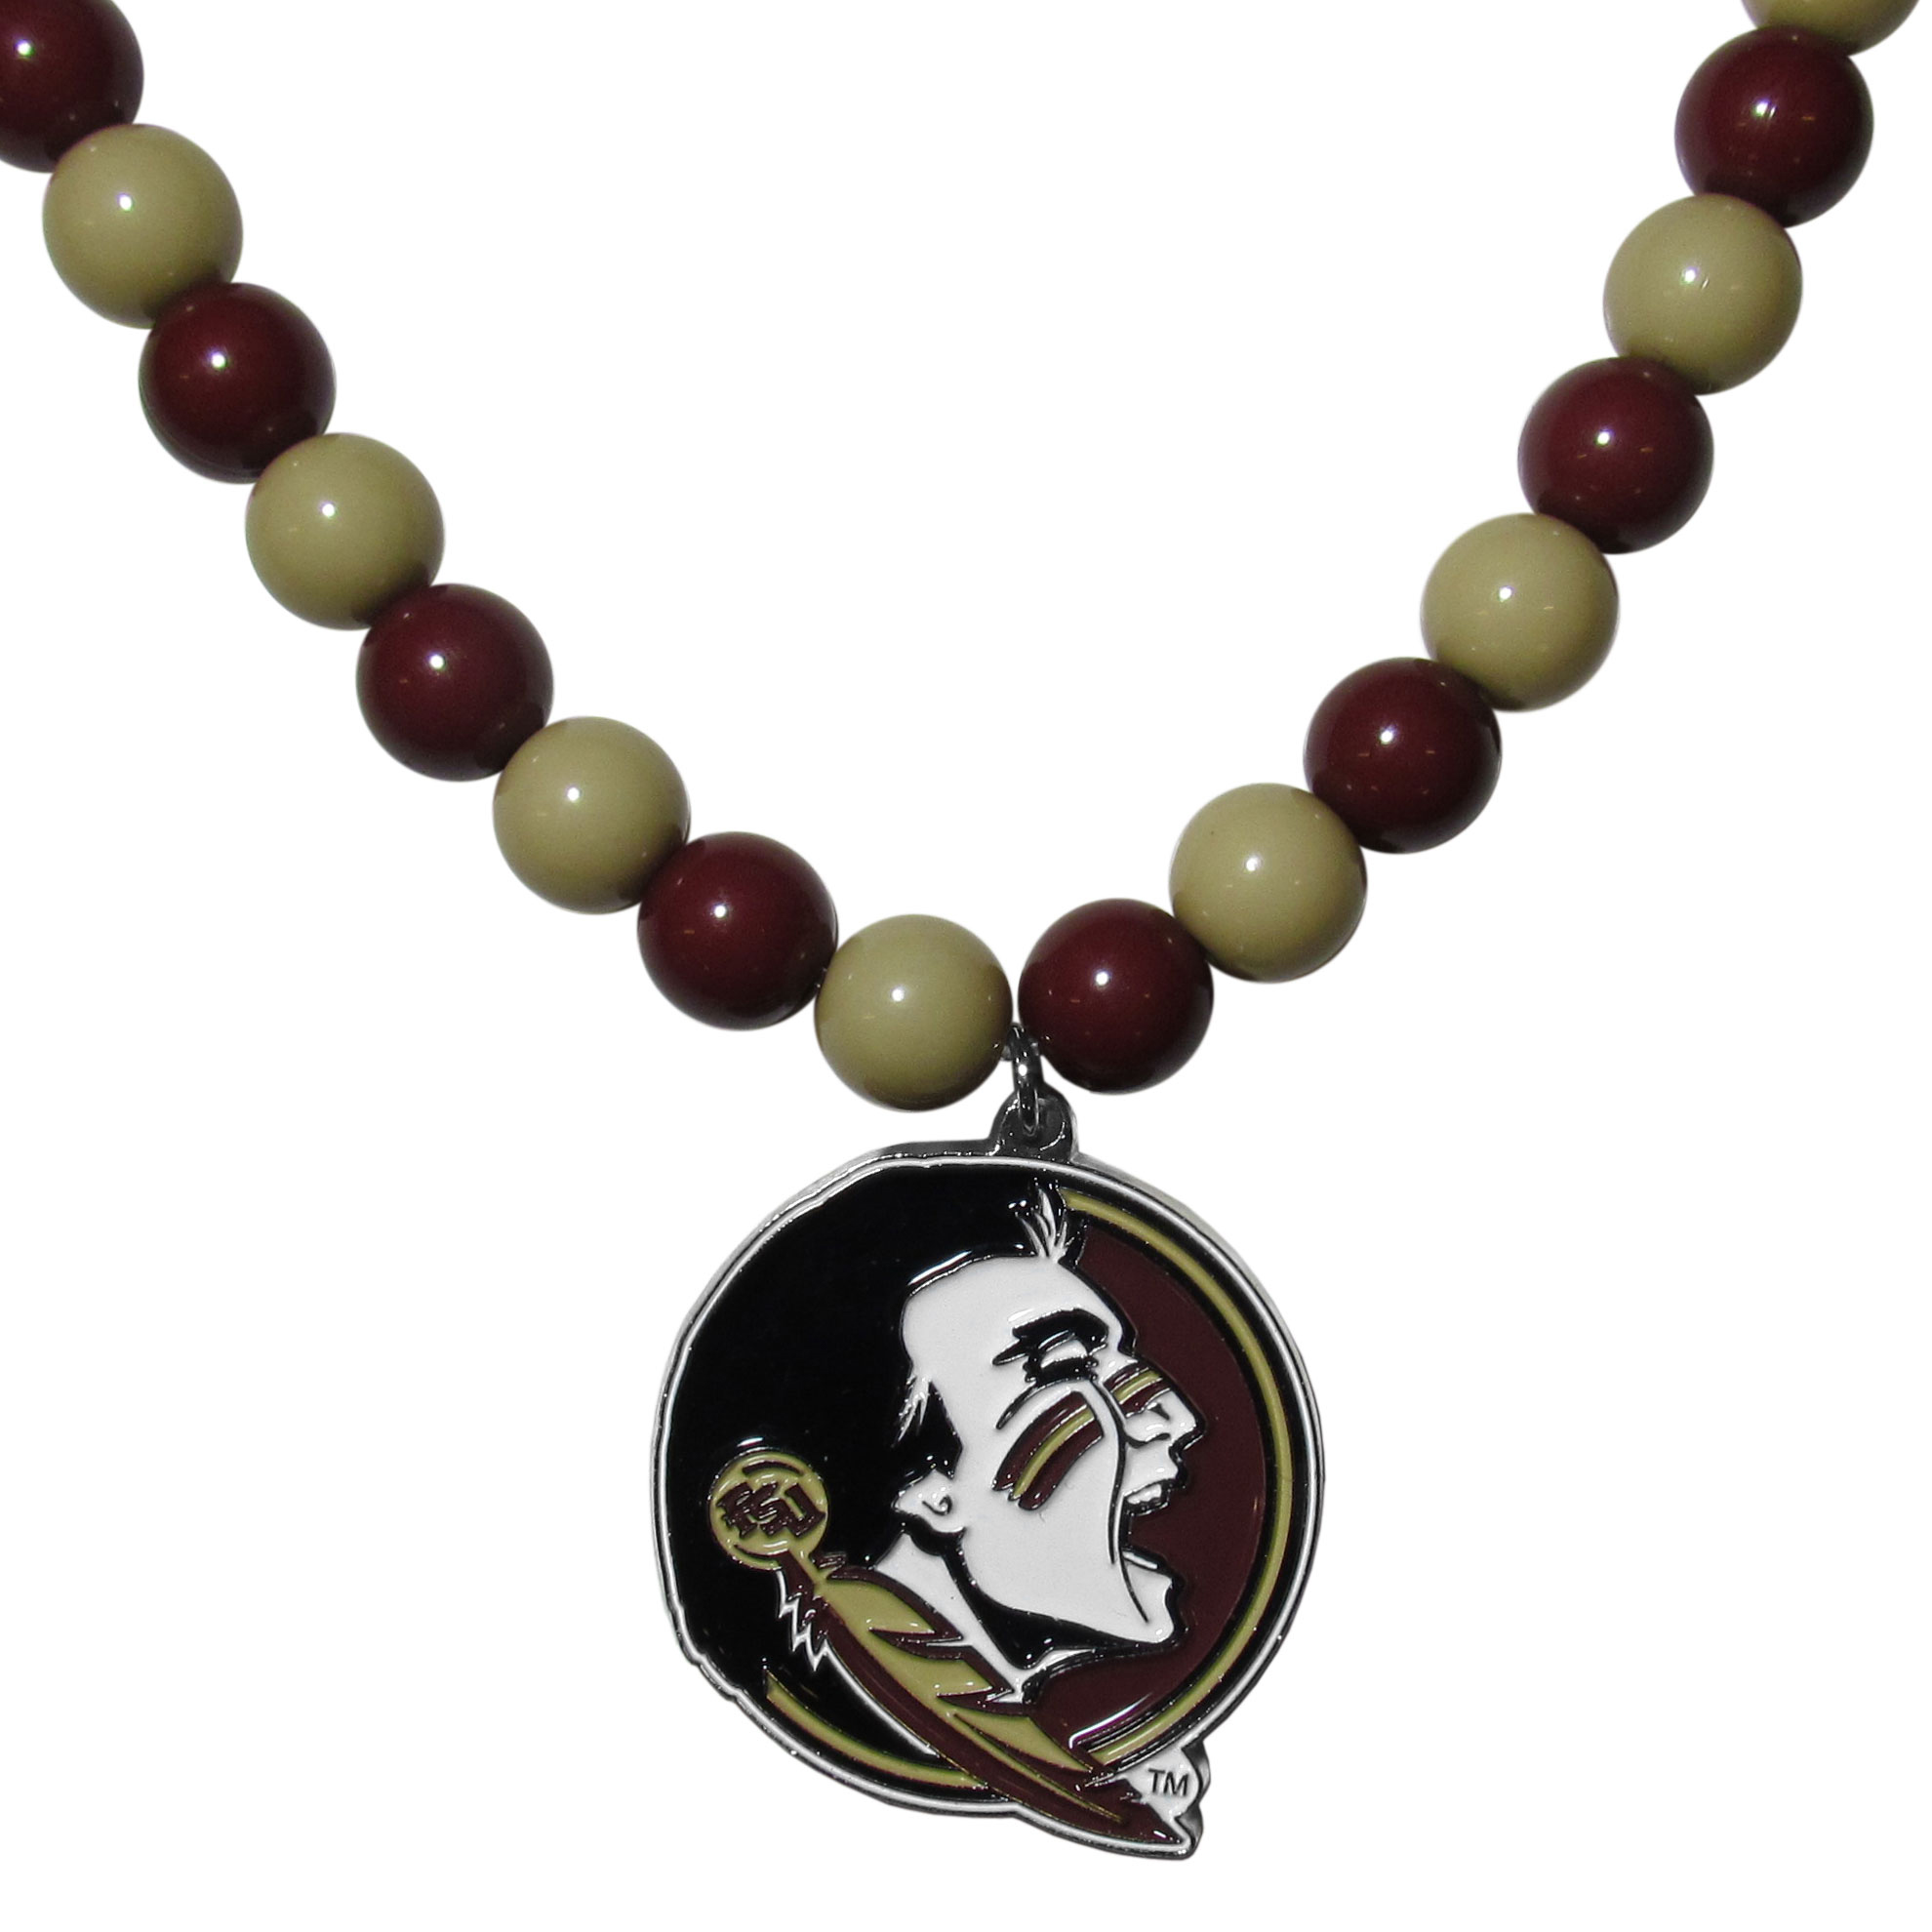 Florida St. Seminoles Fan Bead Necklace - Make a big statement with our fan bead necklaces! These brightly colored necklace have a 24 inch string of alternating colored beads with an extra large, high-polish Florida St. Seminoles pendant.